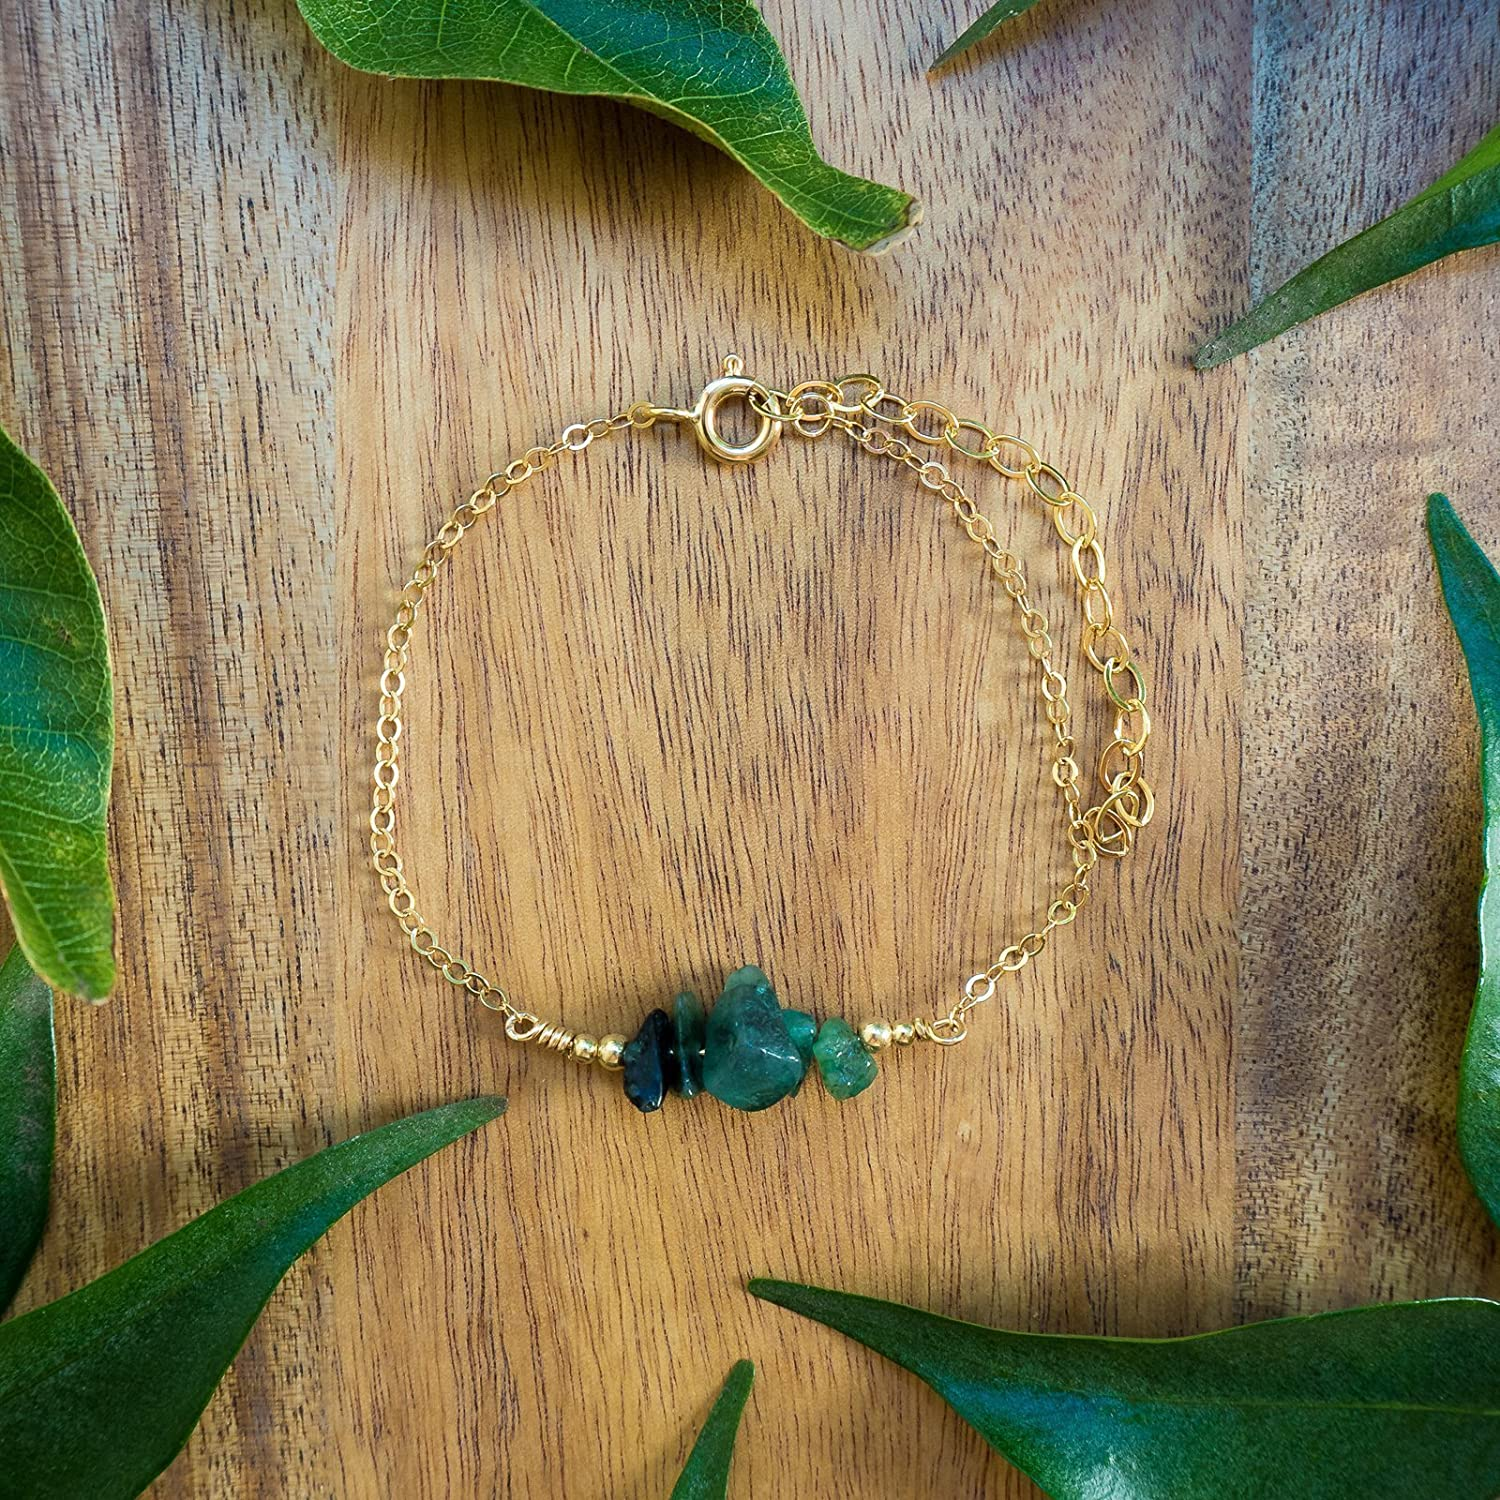 Emerald bead bar crystal bracelet in 14k gold fill - 6